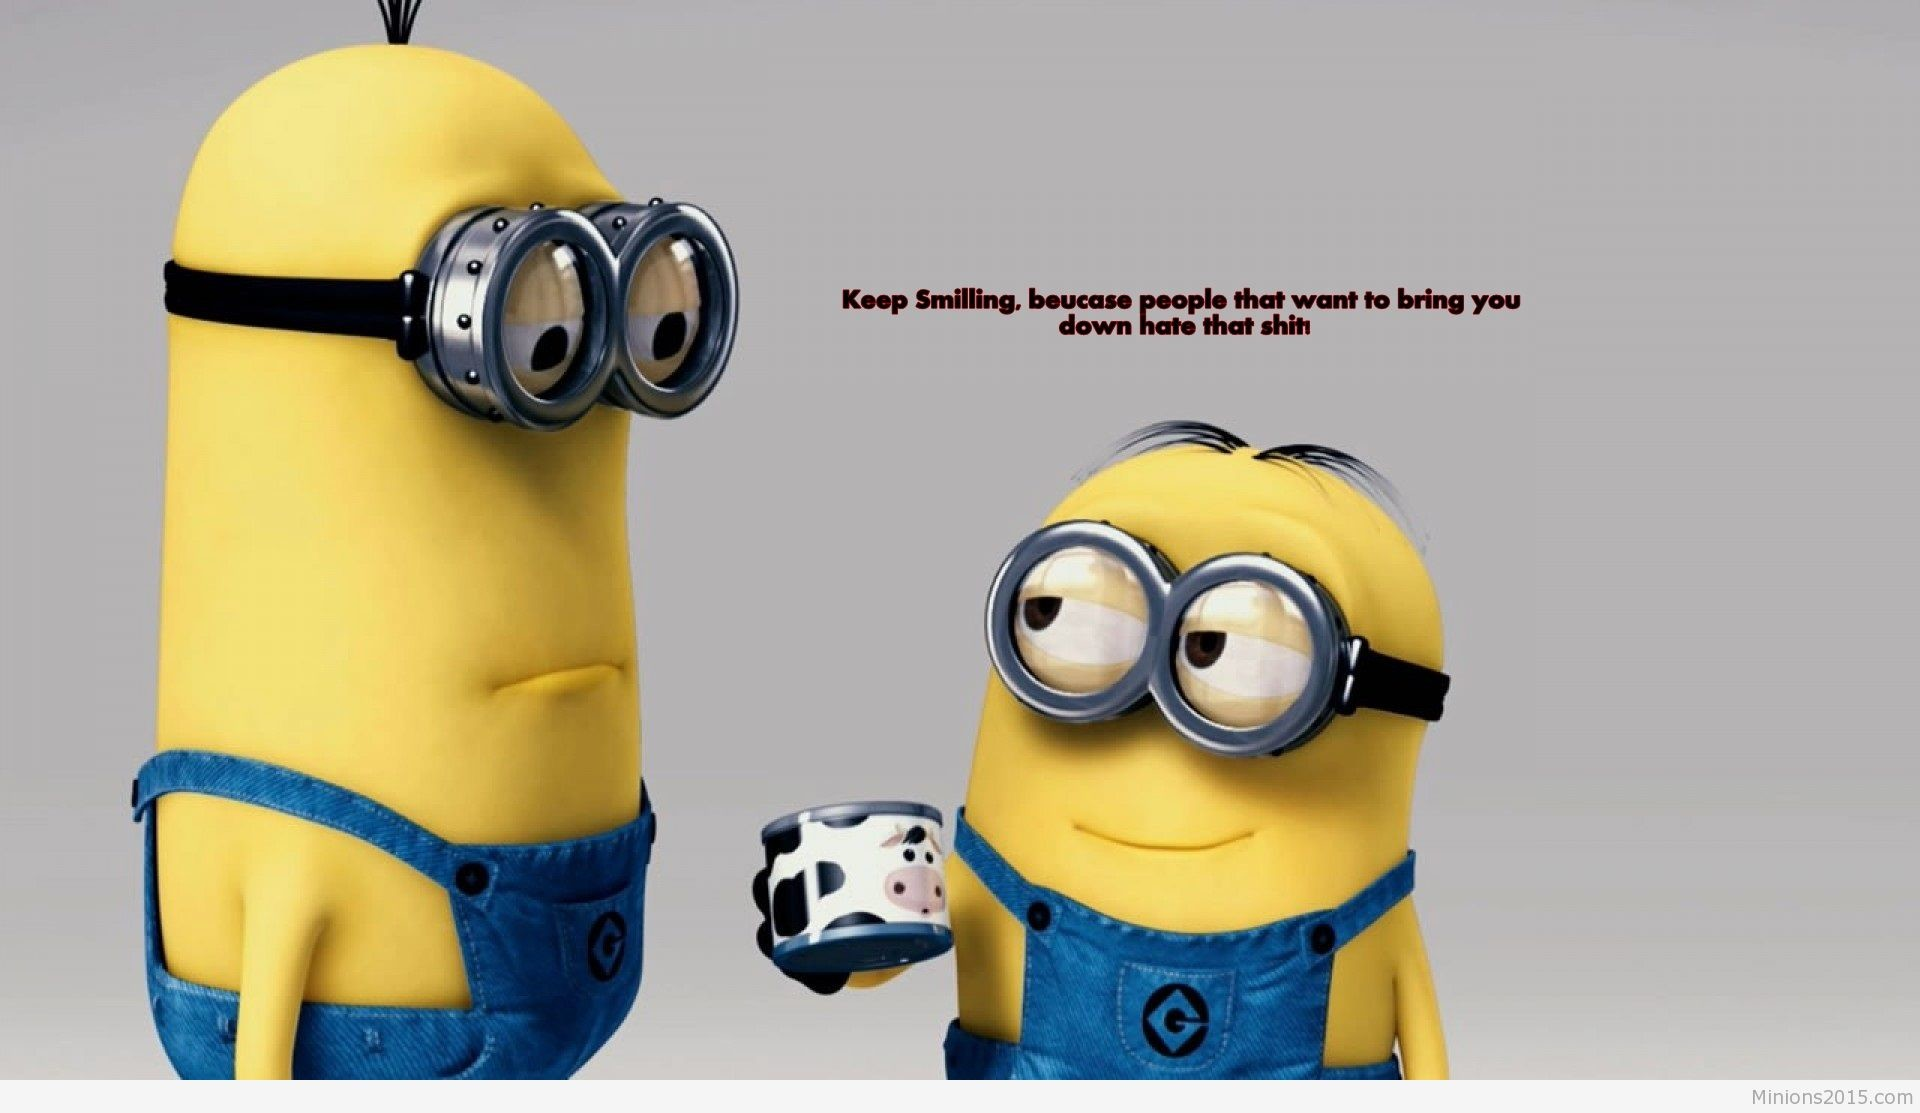 1920x1113 Funny Cartoon wallpaper with minions